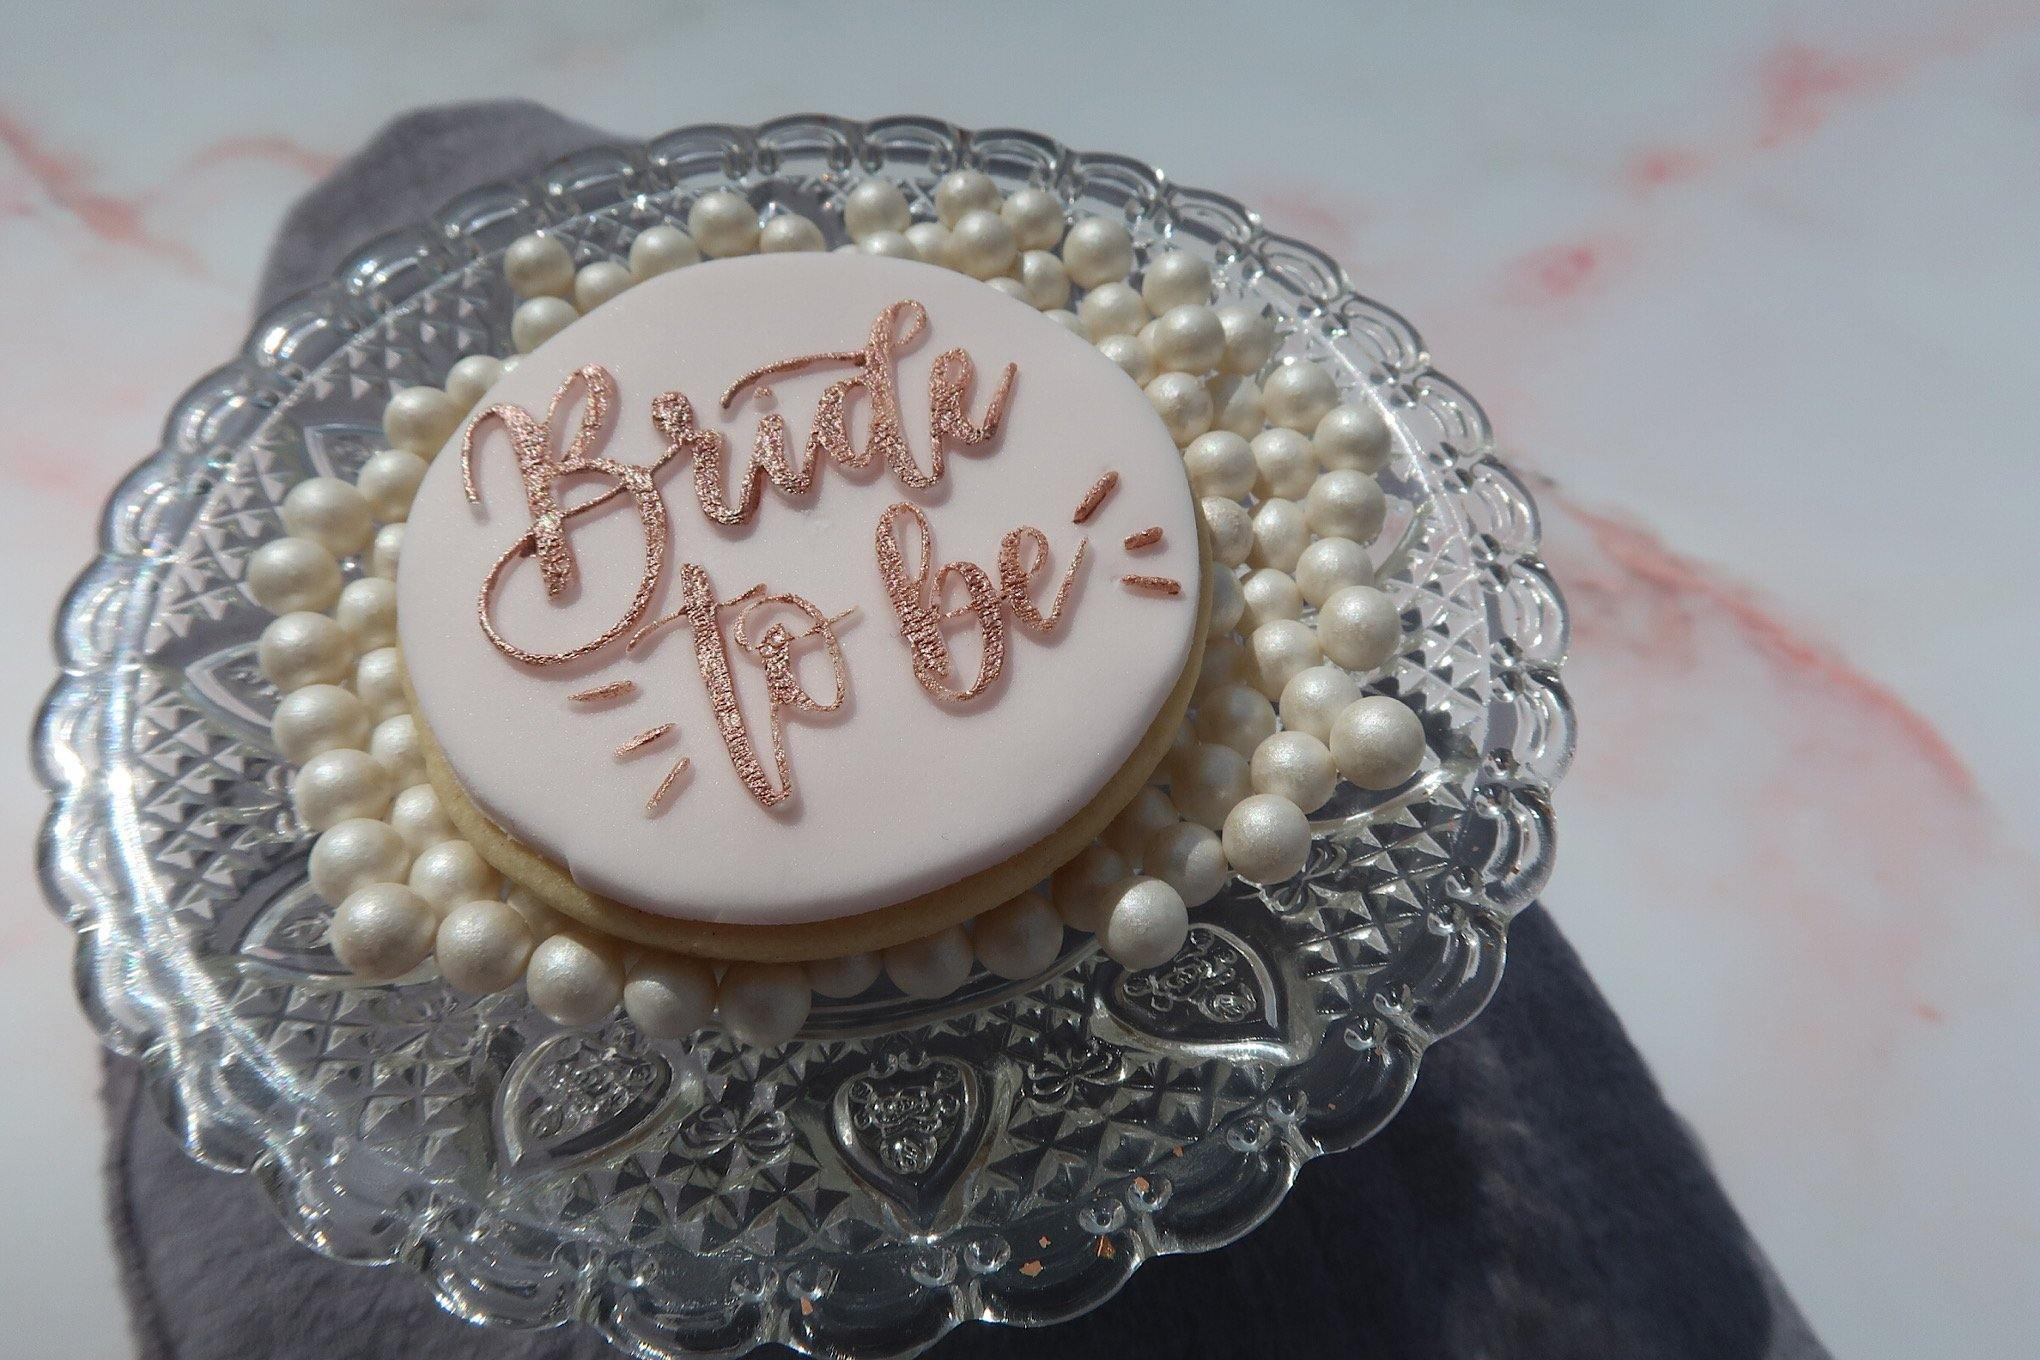 Bride to Be cookie sitting on pearls in a glass dish